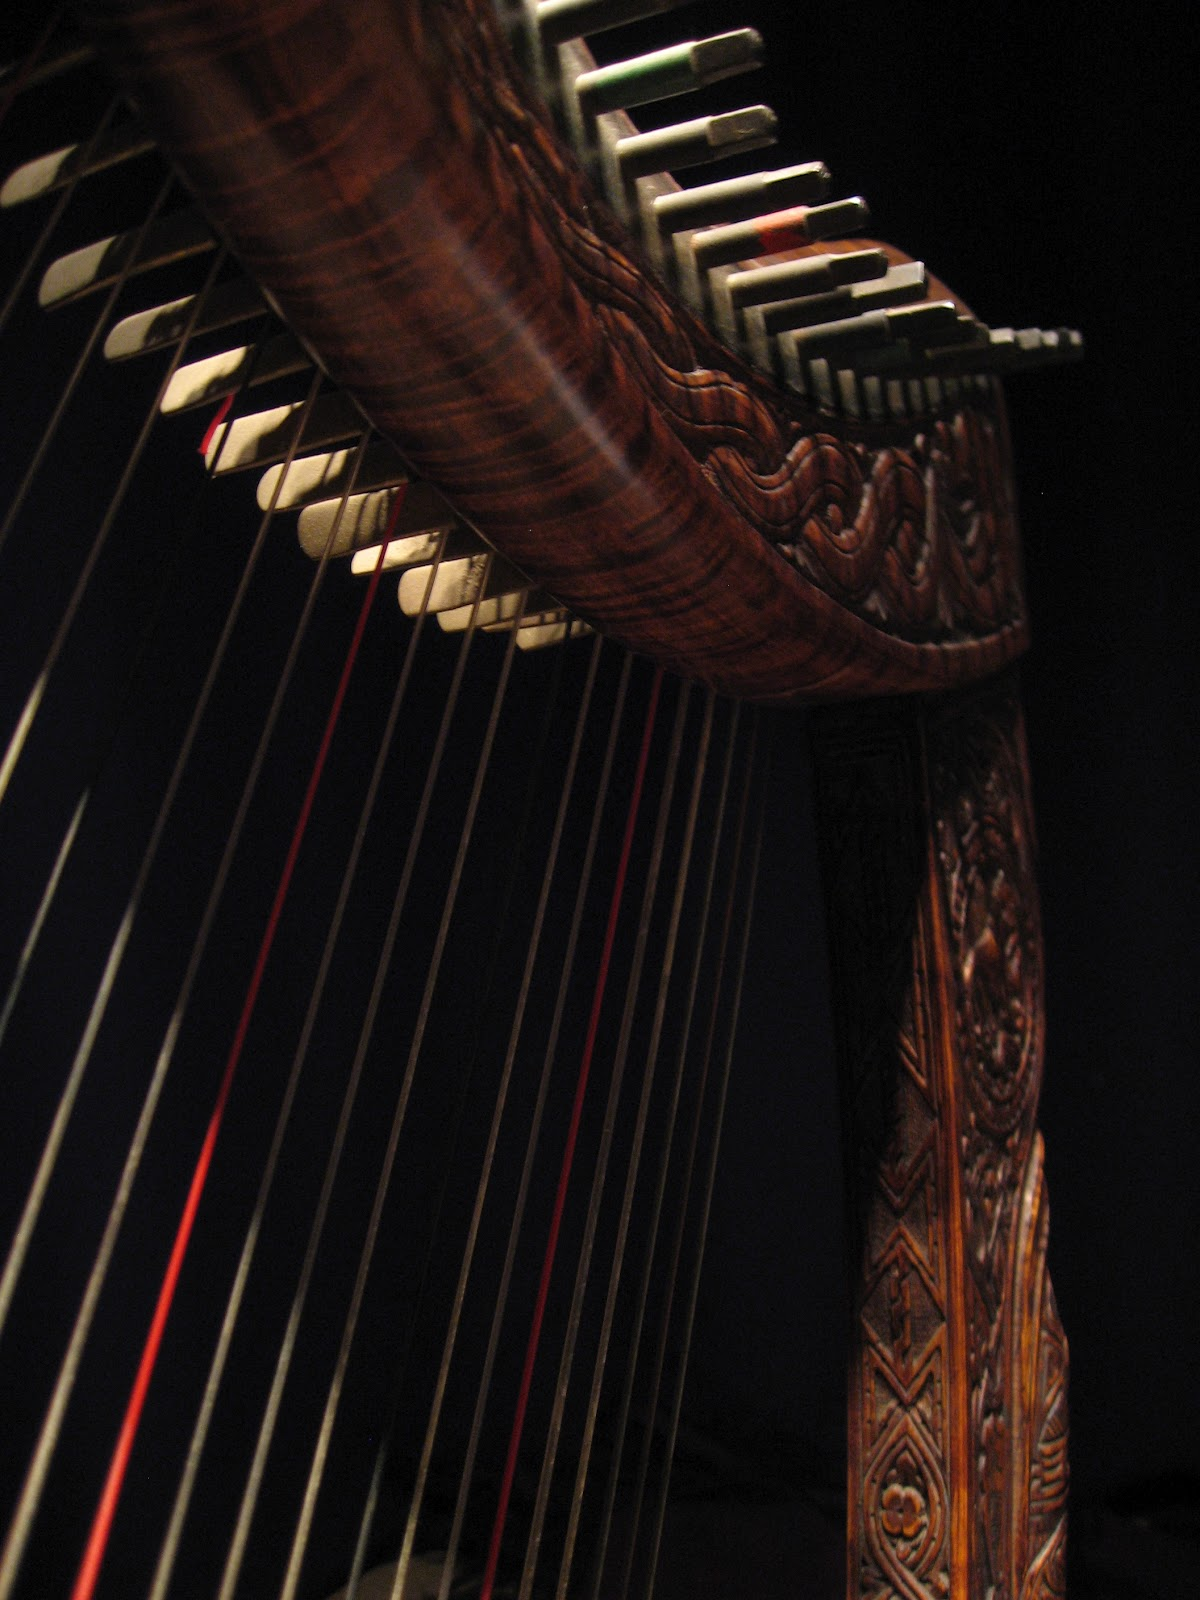 scotlandsmusic: Henry Briggs - 20th century Scottish harp maker